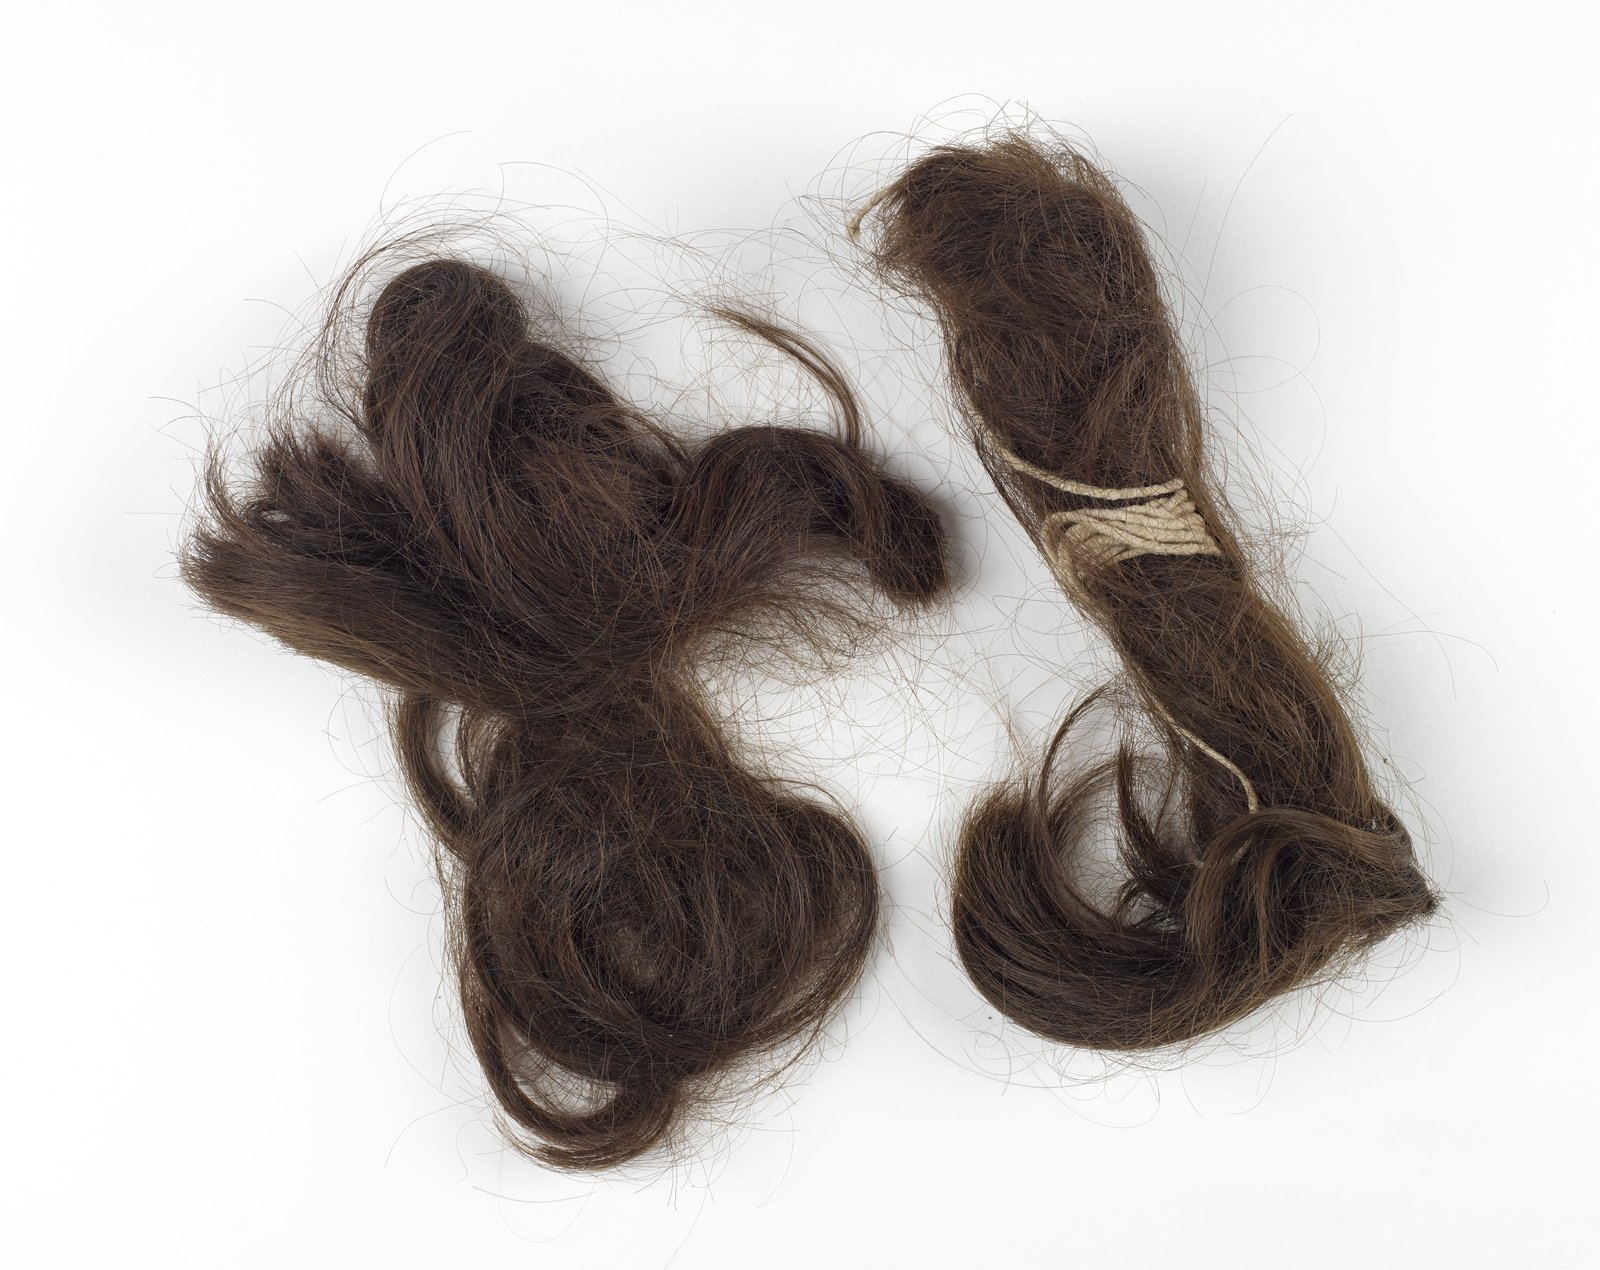 Image - Hair shorn by the IRA during the War of Independence, with letter to Mrs Barry. Image courtesy of the National Museum of Ireland